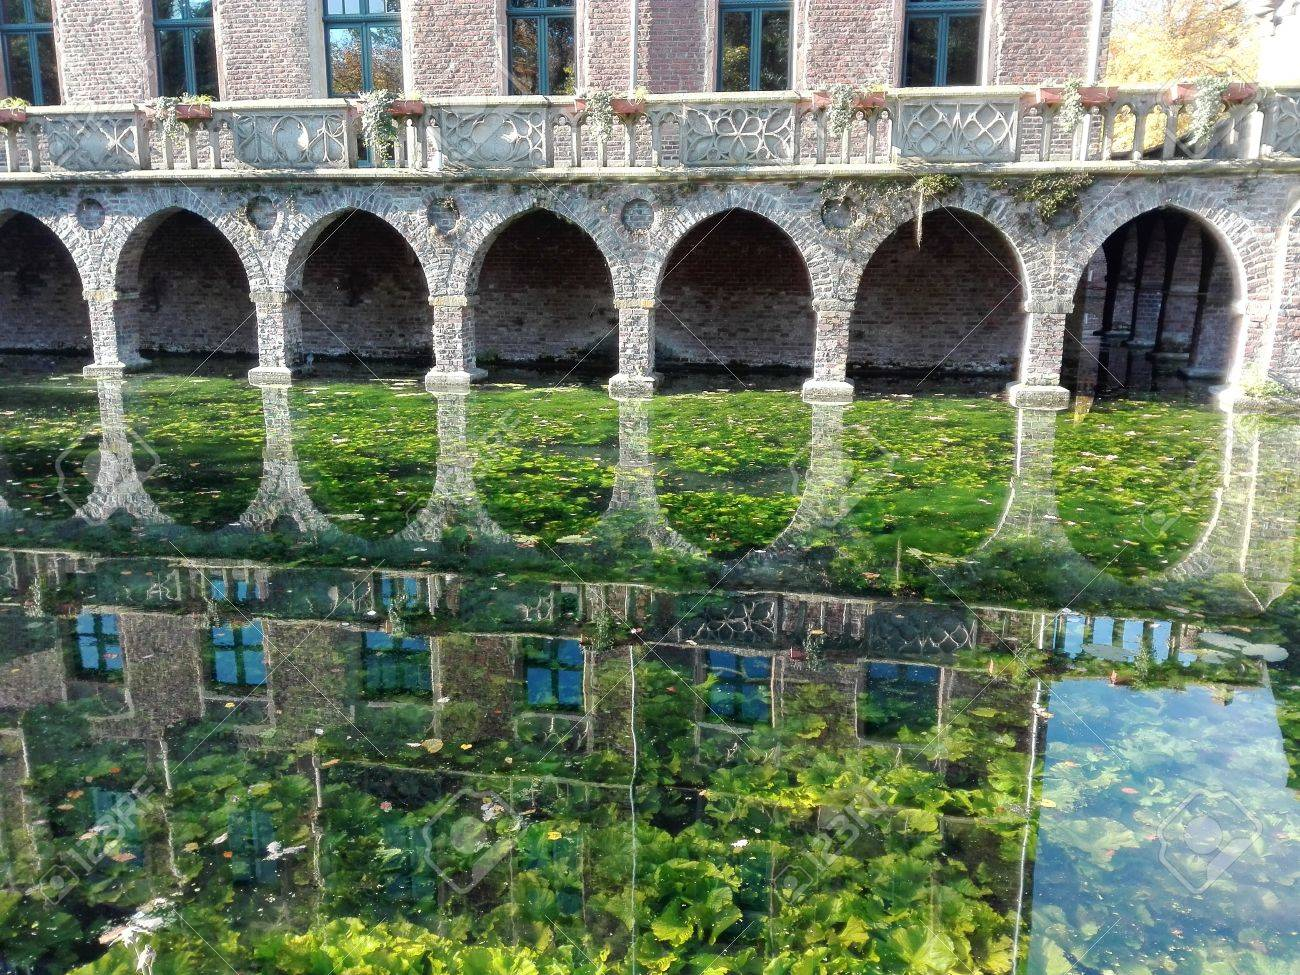 Mirroring - Silhouette of a castle façade mirrored in a moat, covered with aquatic plants. Germany 10.30.2016 - 68769727